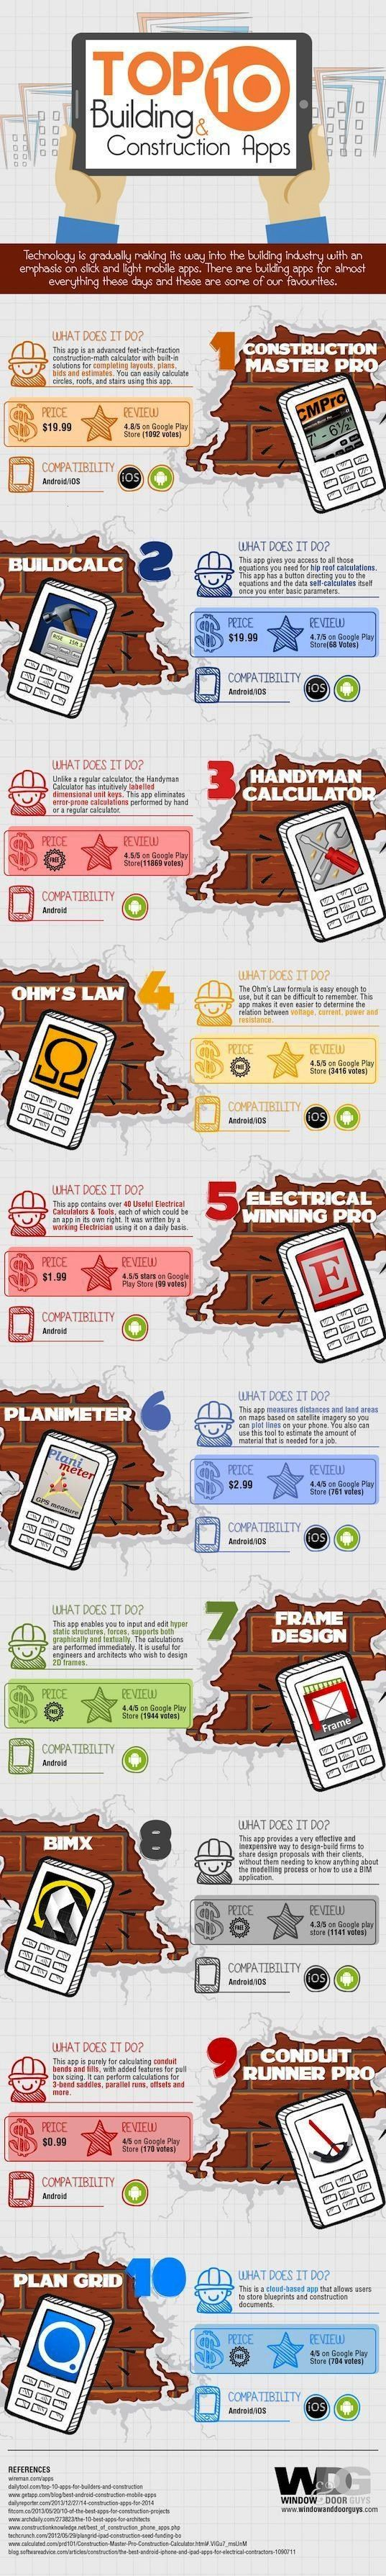 and Door Guys reader submitted content infographic mobile apps construction industry building industry apps construction apps Informations About INFOGRAPHIC Top 10 mobile...